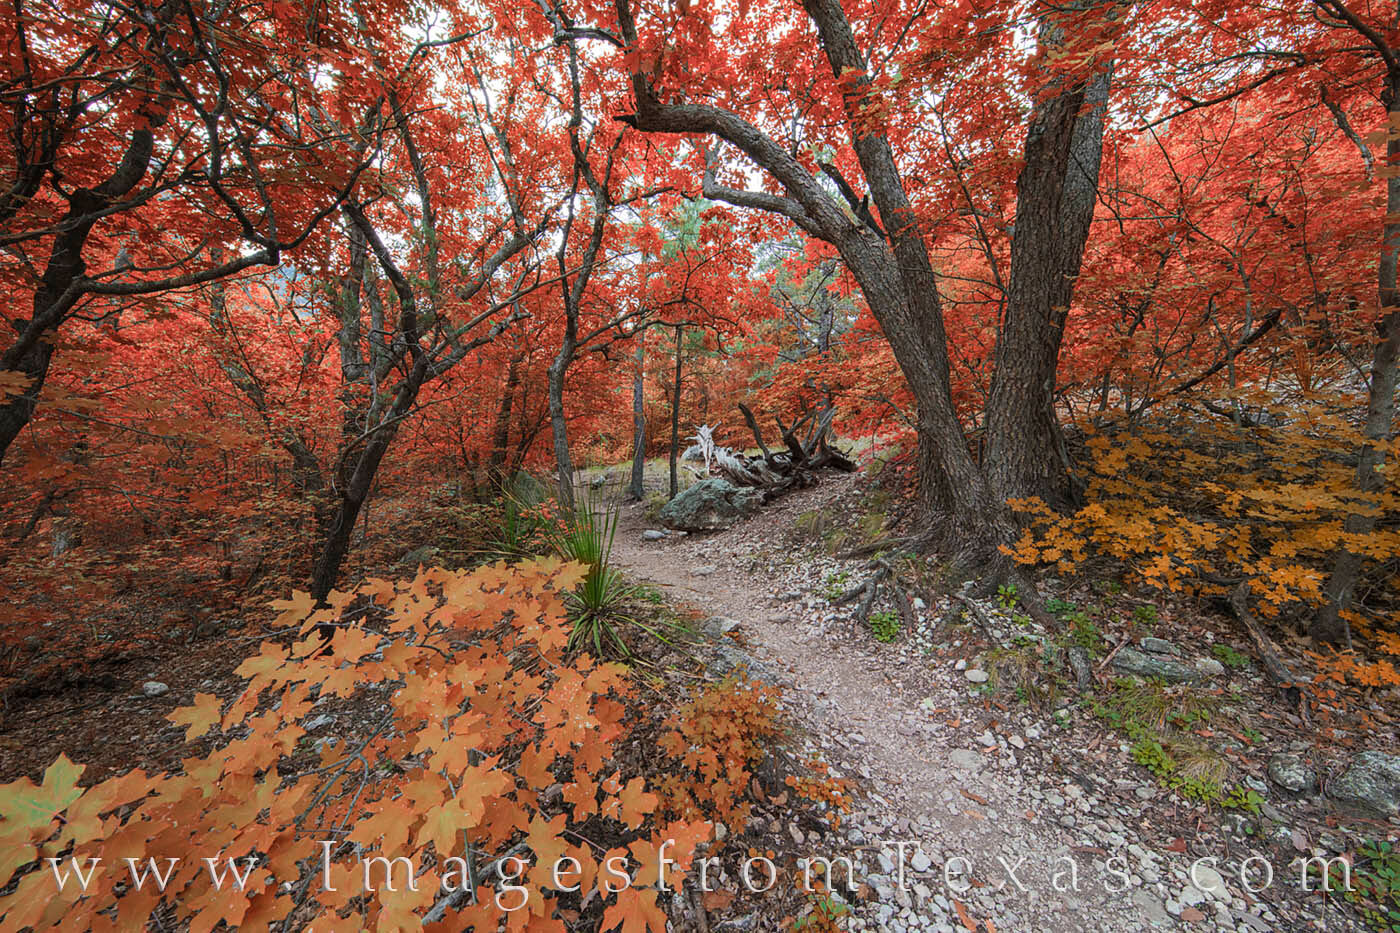 McKittrick Canyon, Guadalupe Mountains, Guadalupe Mountains National Park, Texas fall colors, Texas national parks, autumn colors, west texas, texas hiking, texas hikes, photo